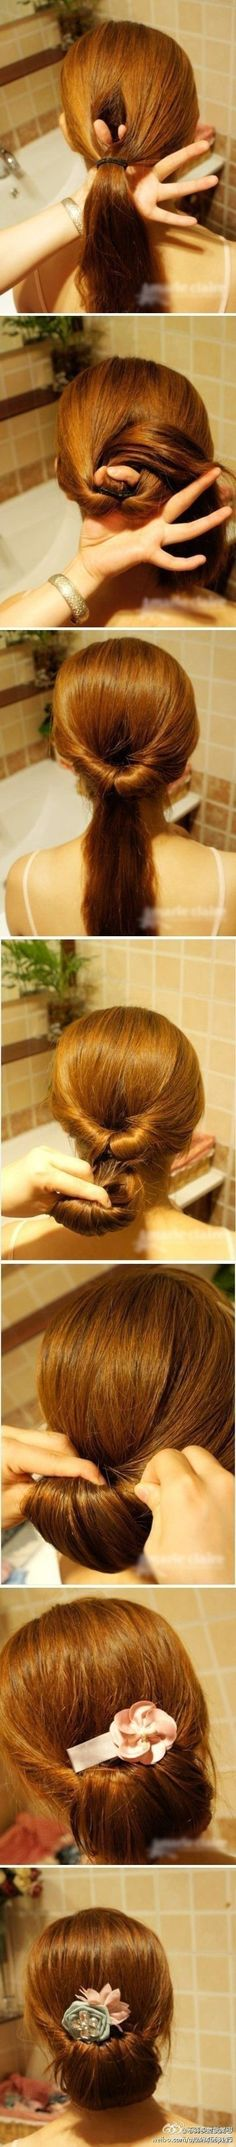 How-To Guide to Hairstyles (27 pics)